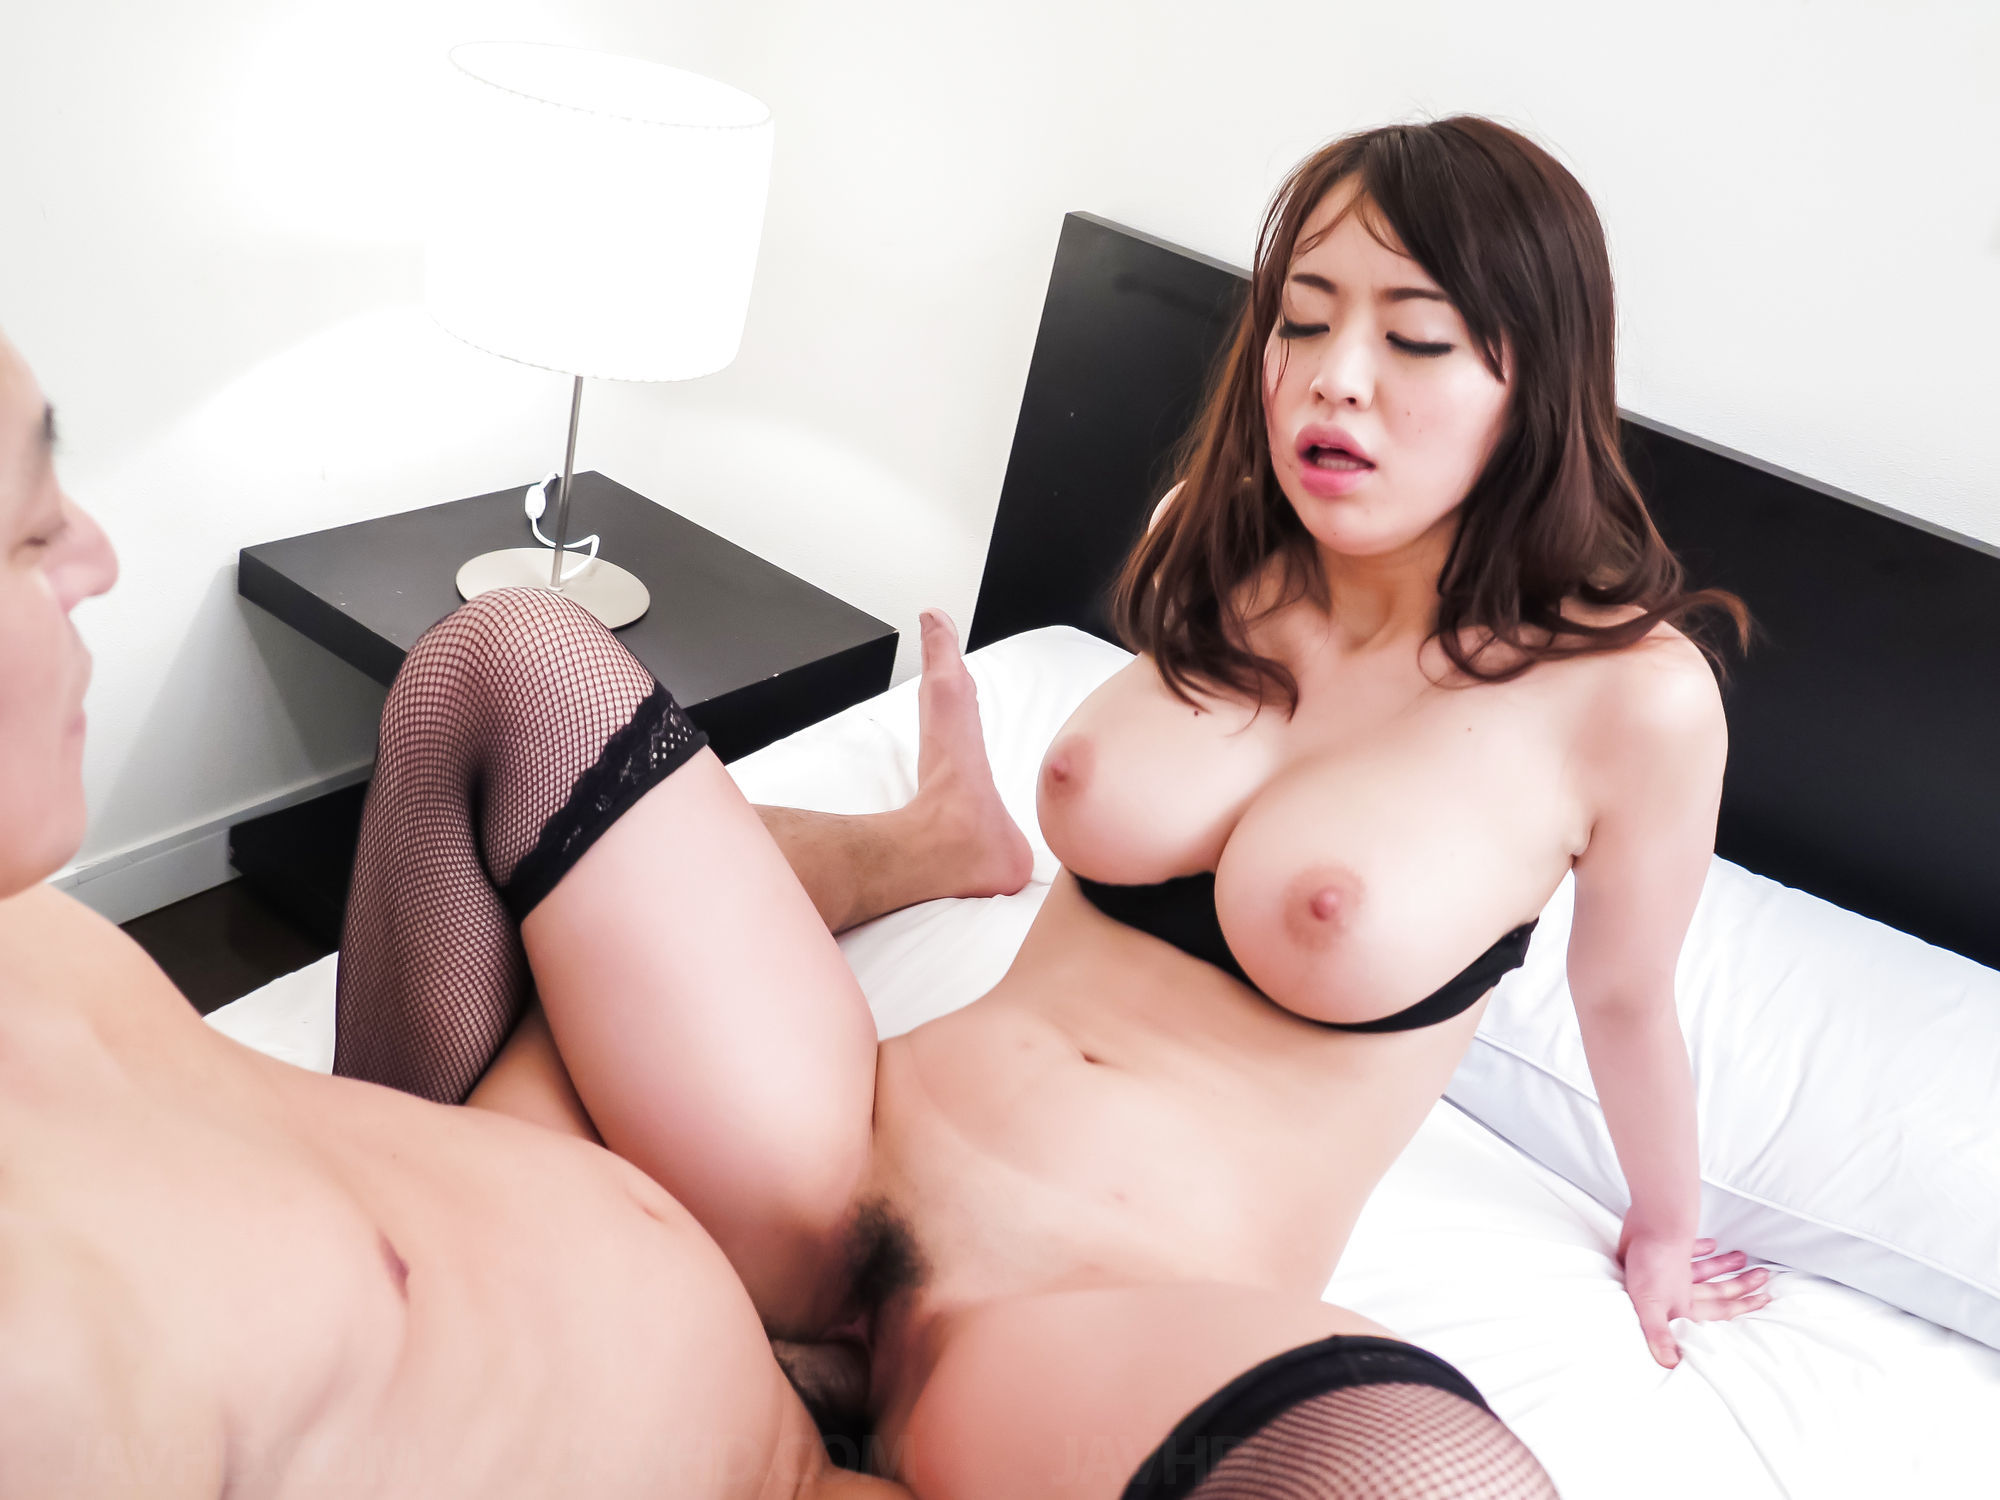 Ruri haruka shows off riding her new toy cock 5